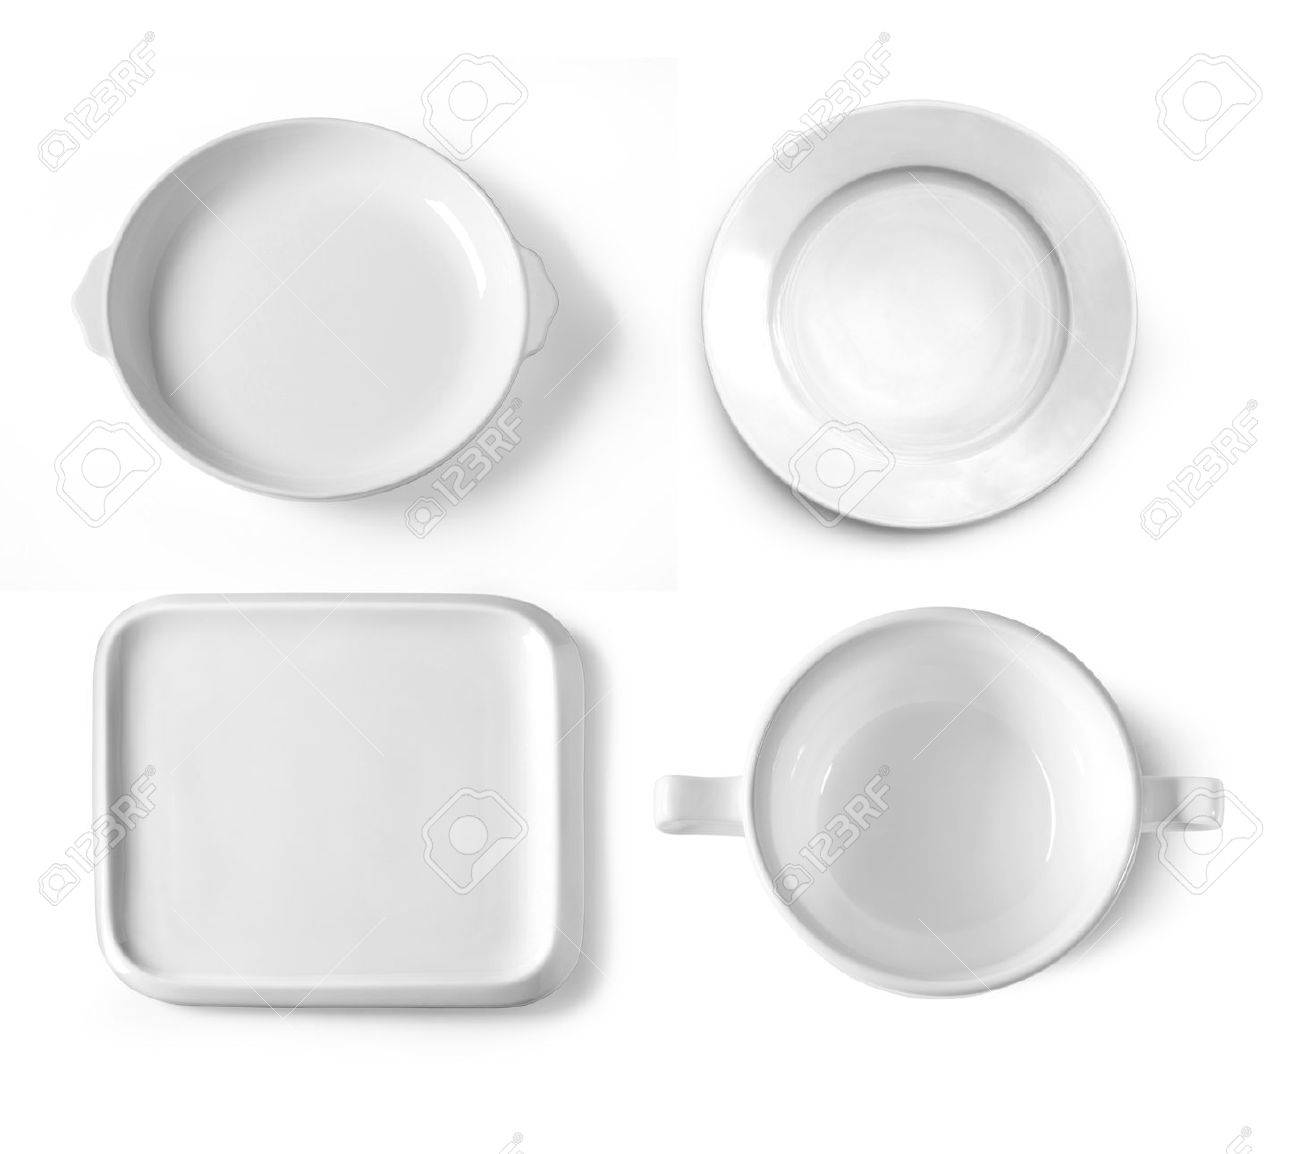 different plates isolated on white background - 47856171